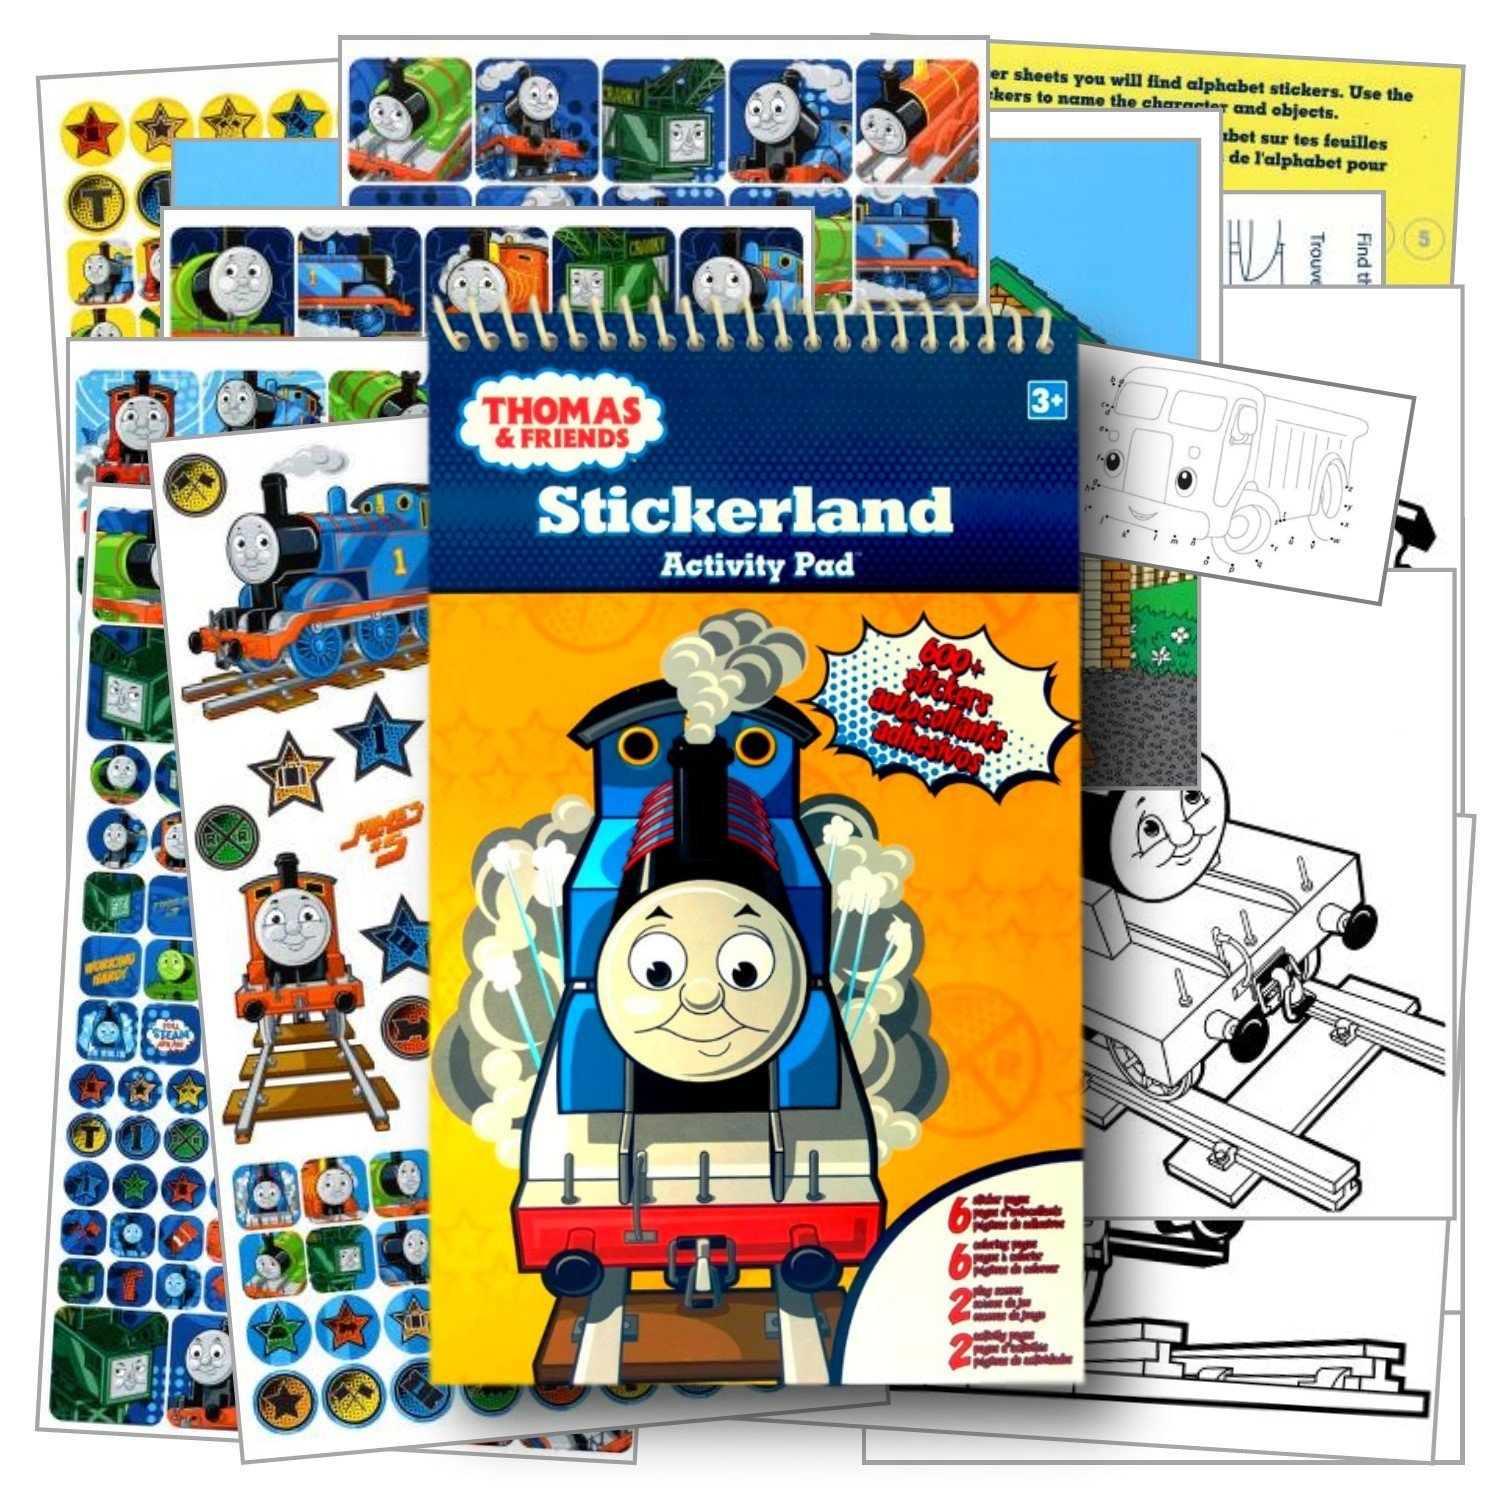 Thomas the Train Stickers Activity Pad with Fun Separately licensed Coloring Sticker ~ Over 600 Stickers, 6 Coloring Book Pages, 2 Play Scenes, & 2 Activity Pages